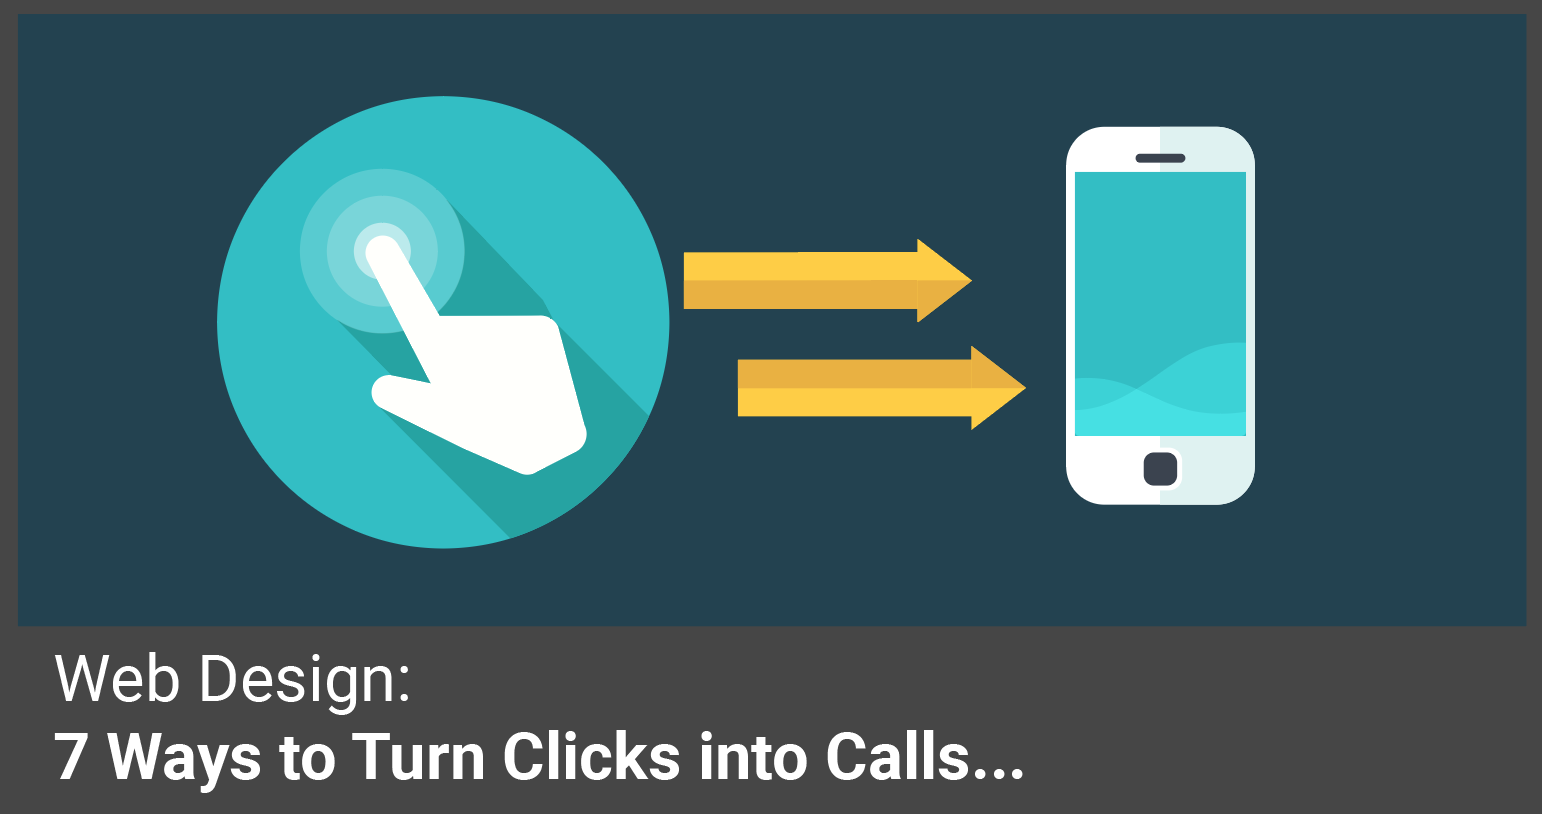 Ways to turn clicks into calls